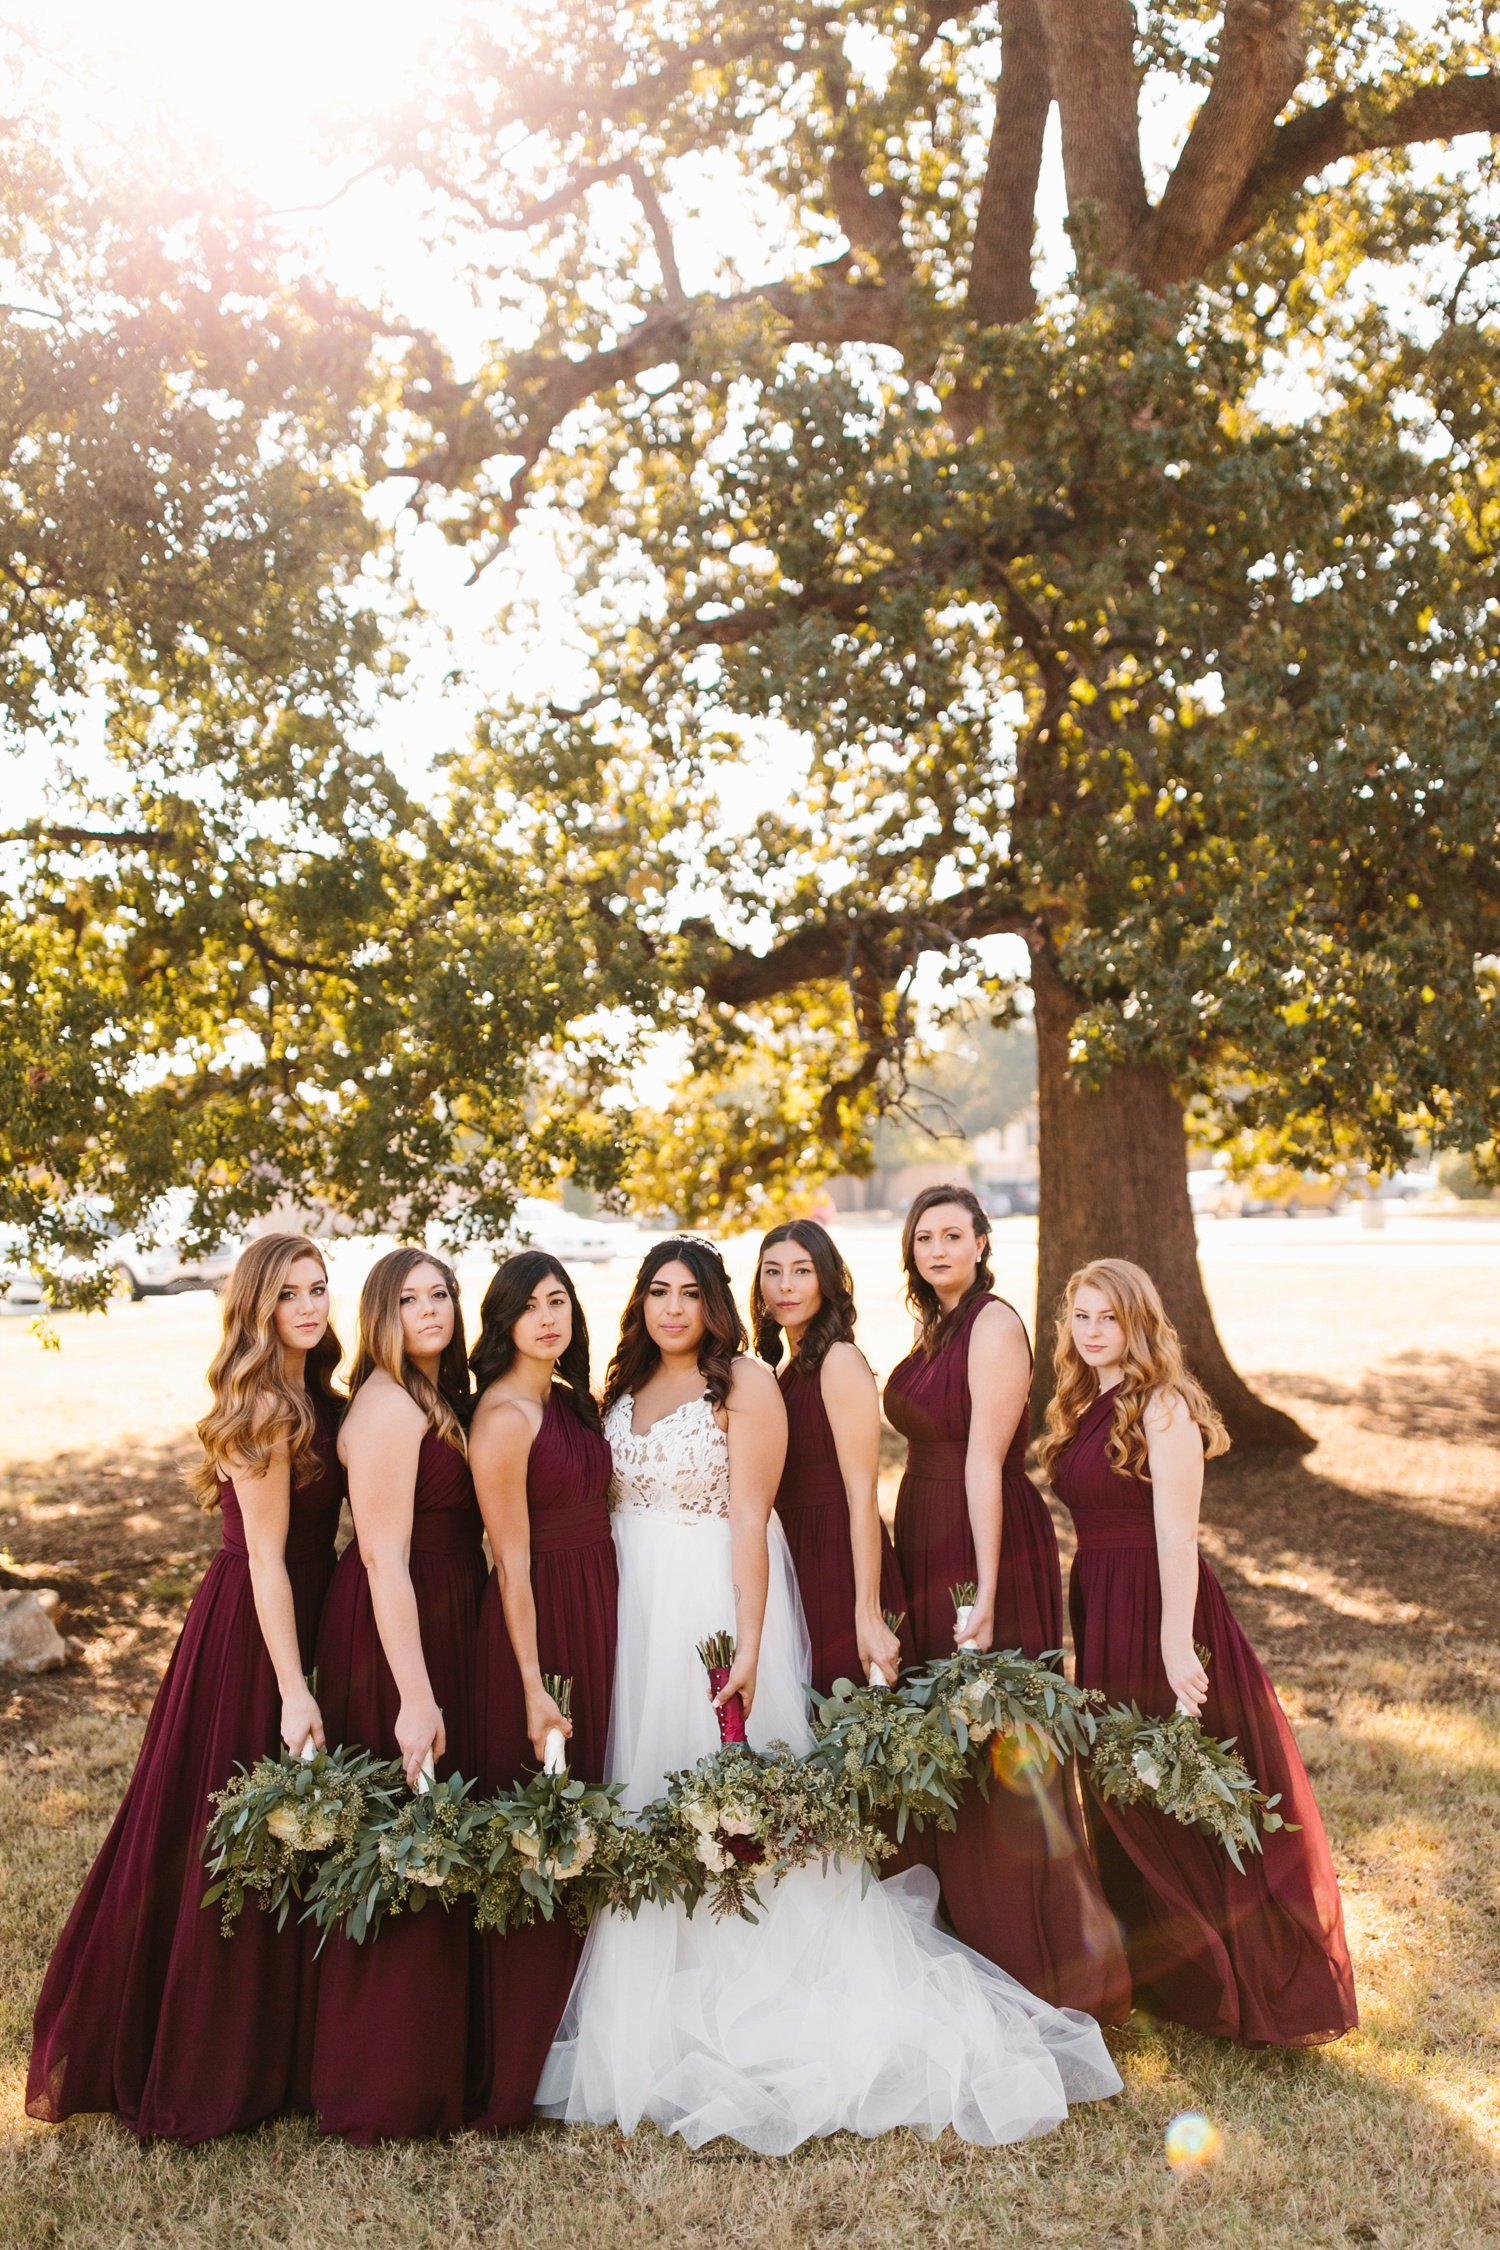 Grant + Lysette | a vibrant, deep burgundy and navy, and mixed metals wedding at Hidden Pines Chapel by North Texas Wedding Photographer Rachel Meagan Photography 037